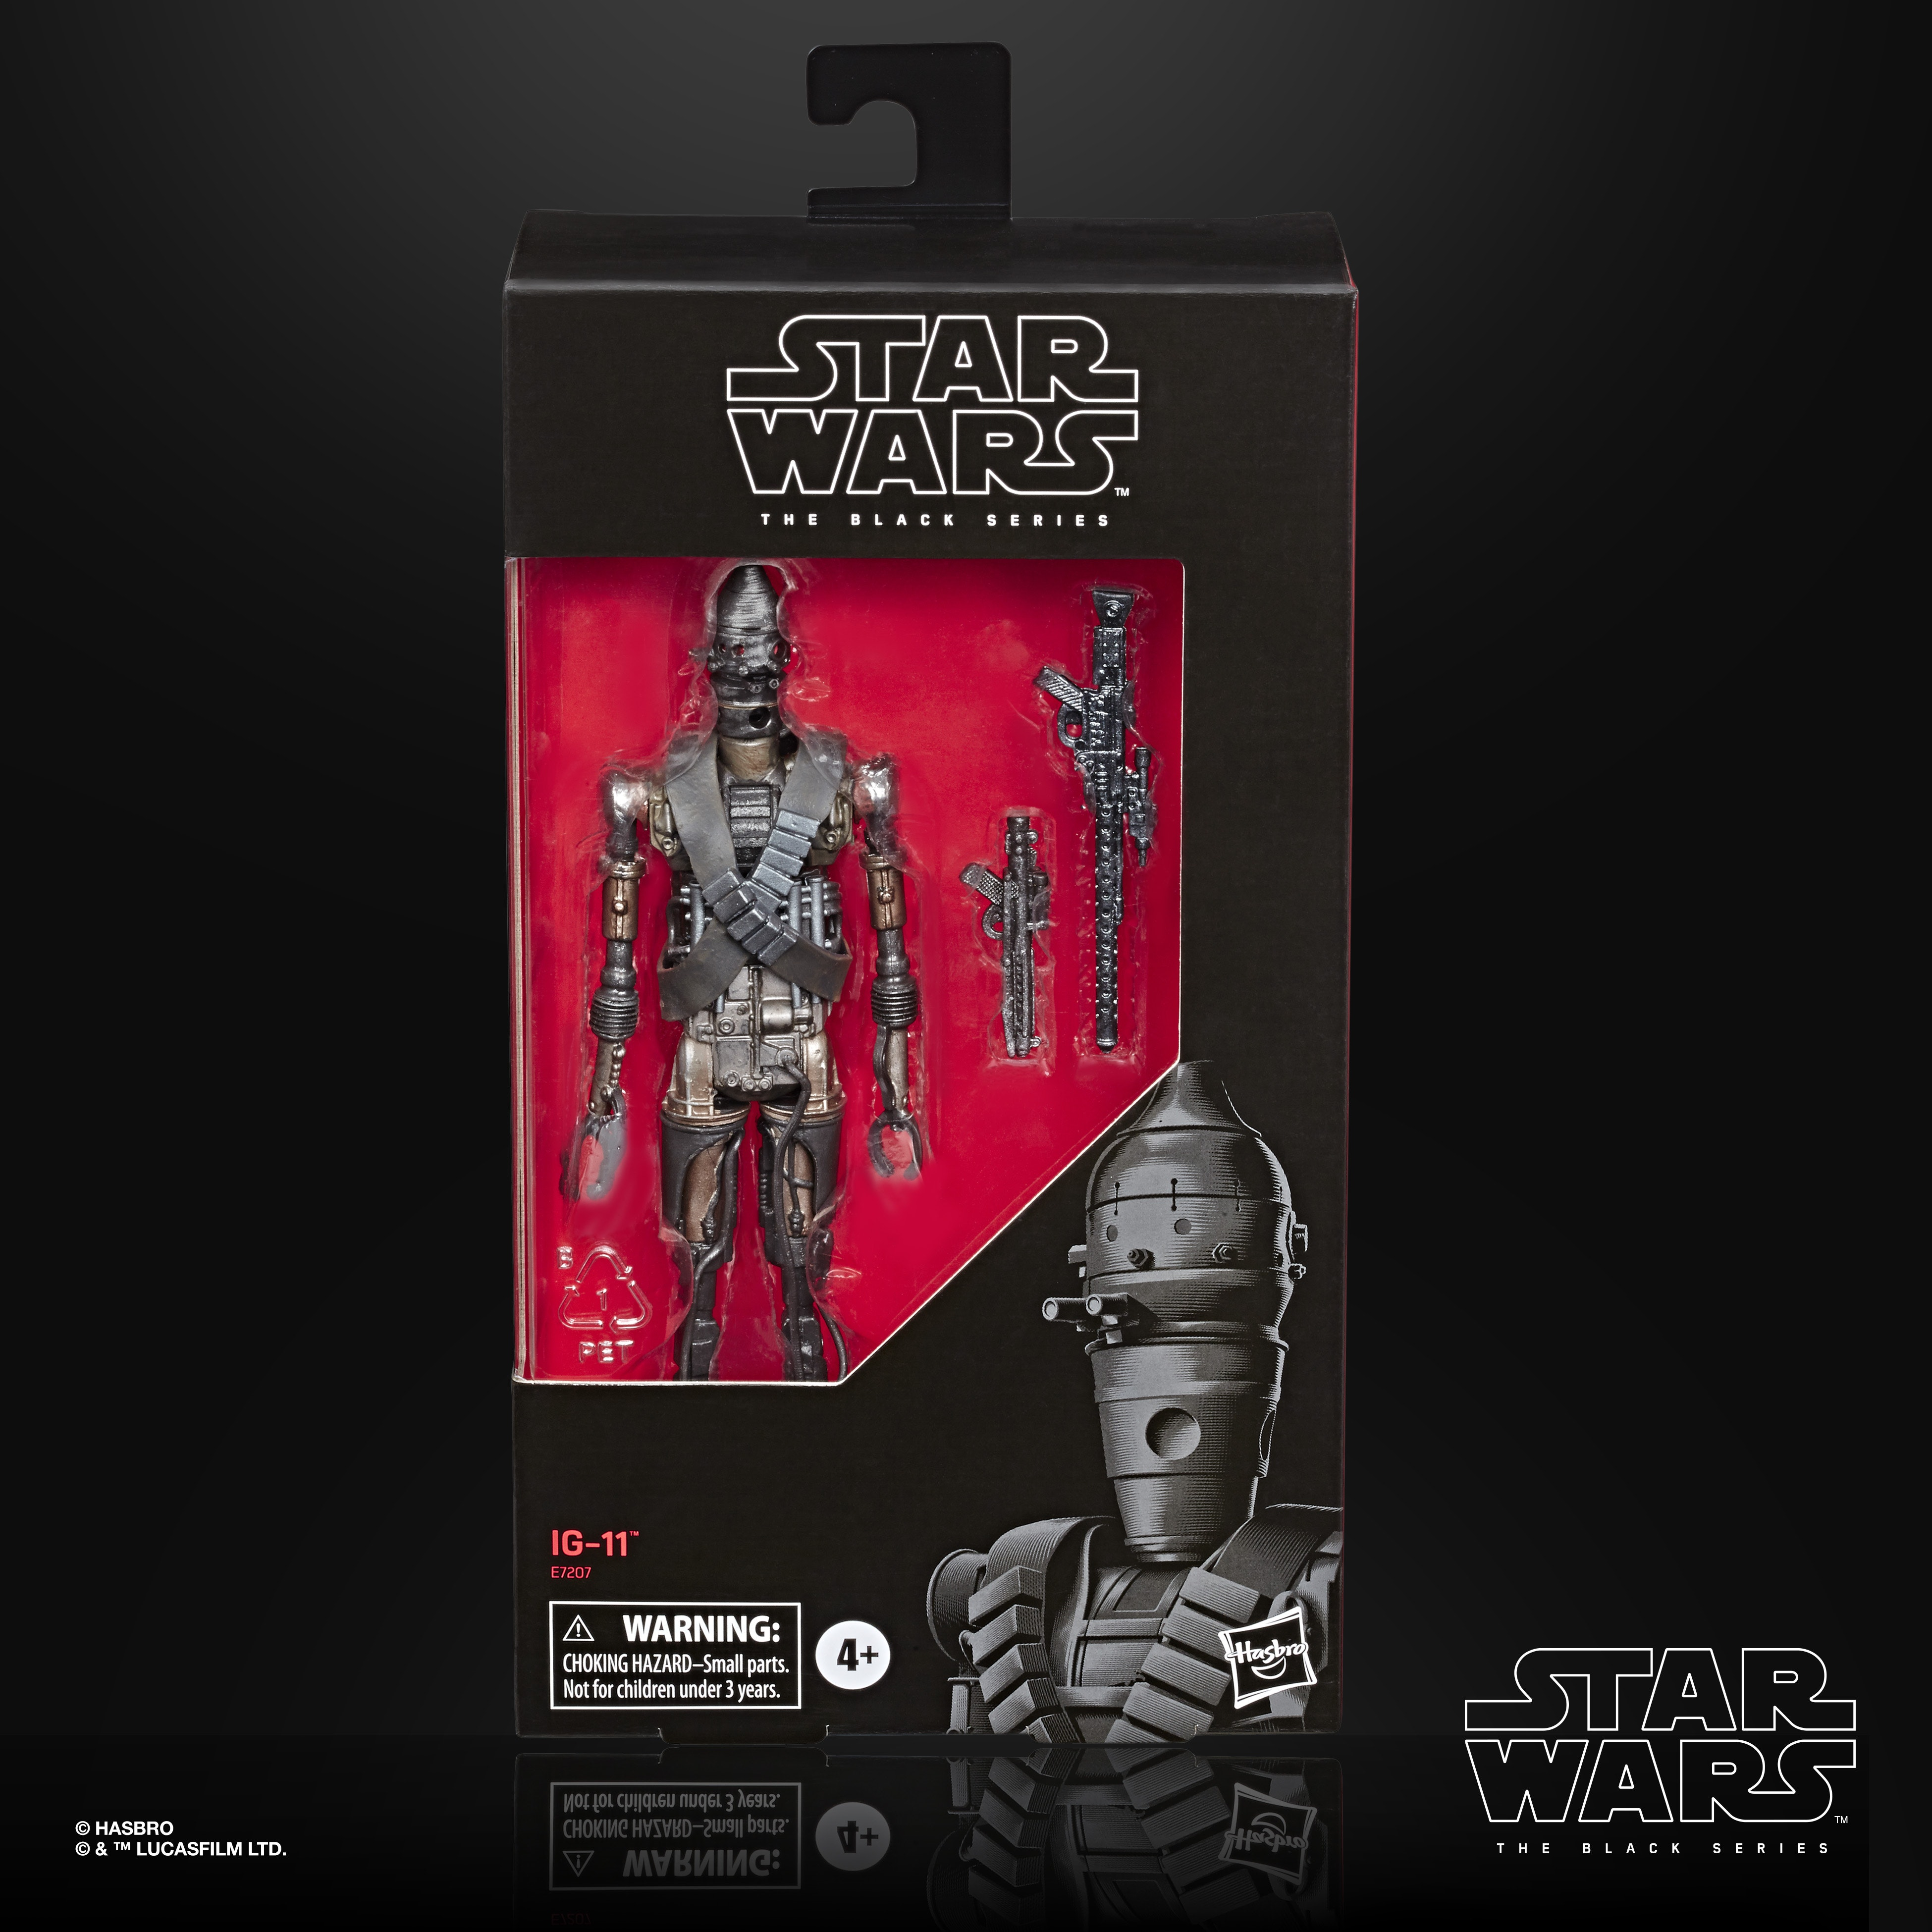 STAR WARS THE BLACK SERIES IG-11 The Mandalorian